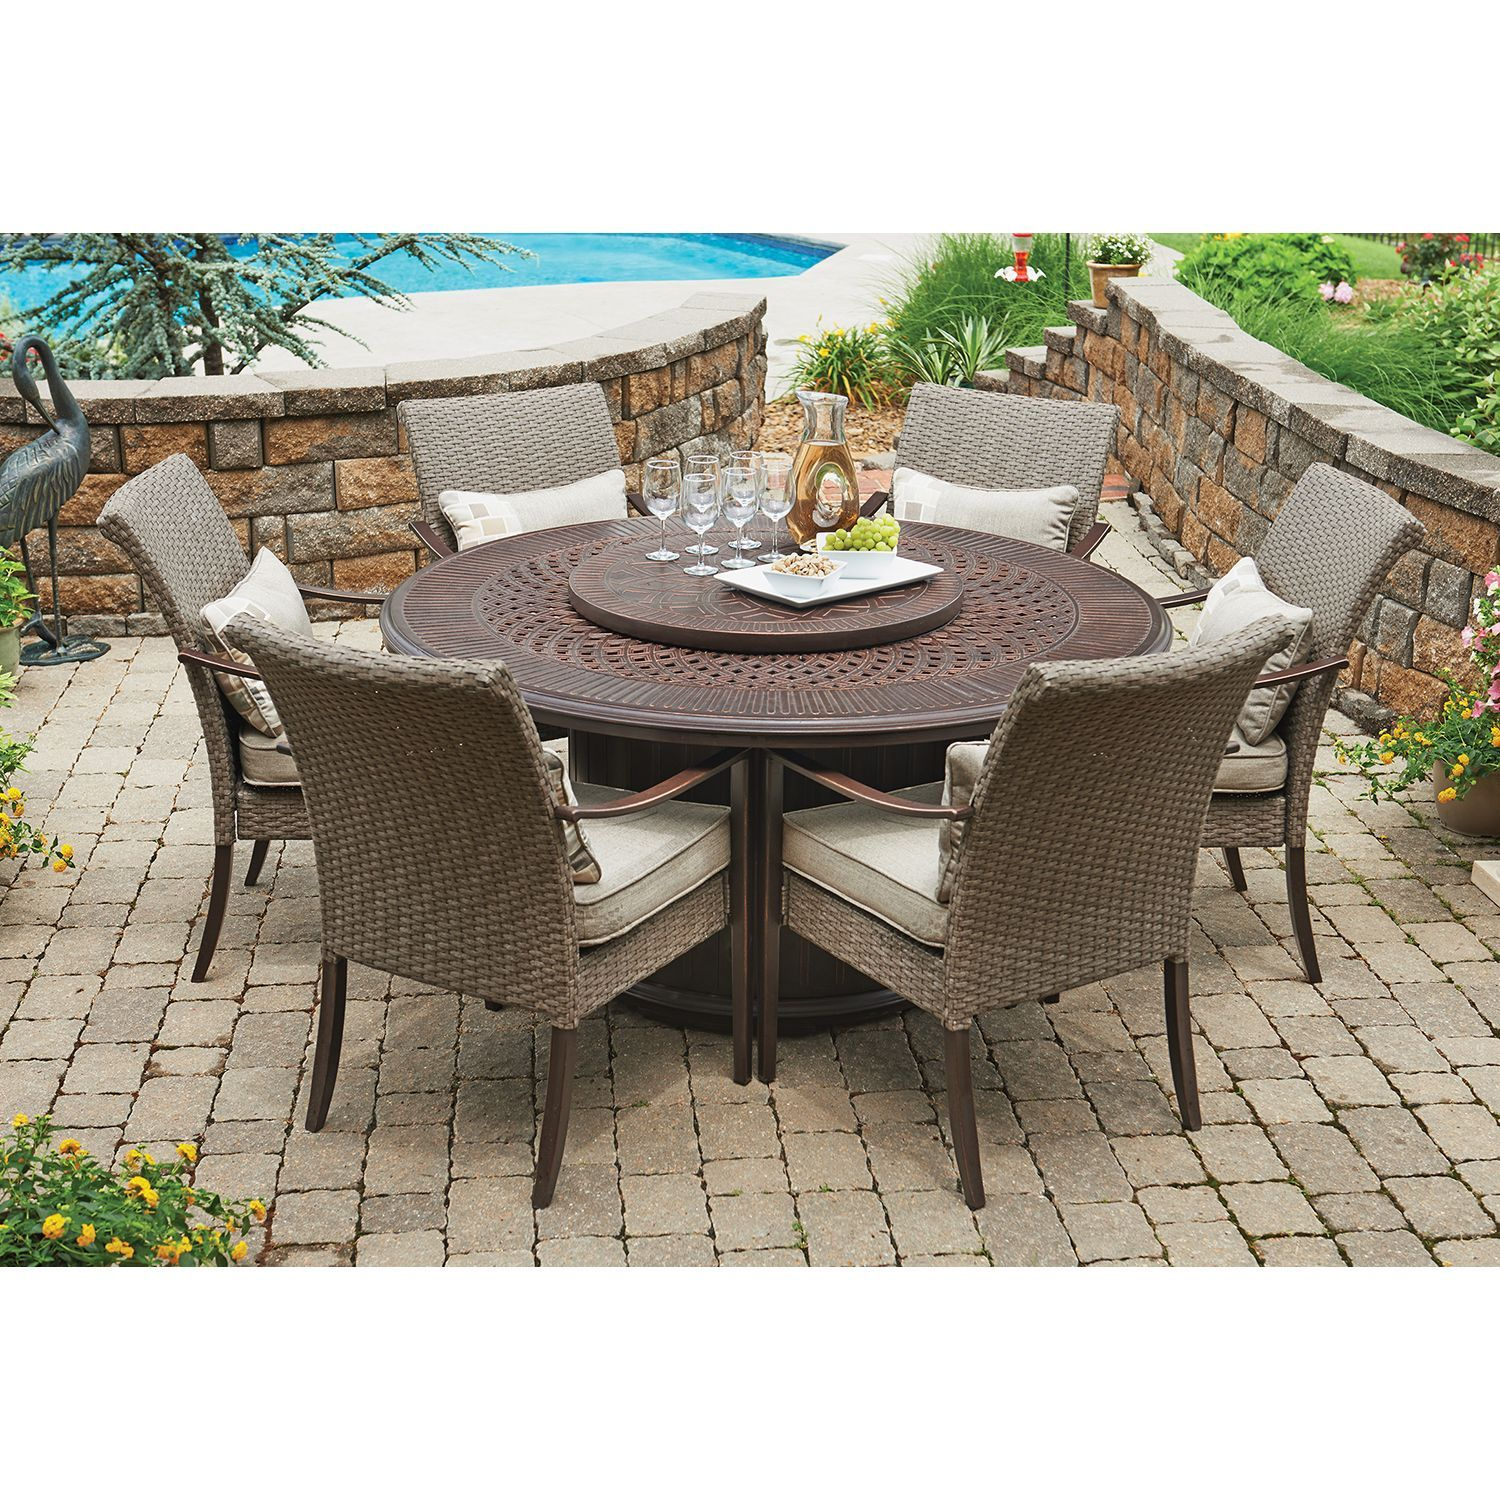 Memberu0027s Mark Fairbanks 8 Piece Fire Pit Dining Set   Samu0027s Club